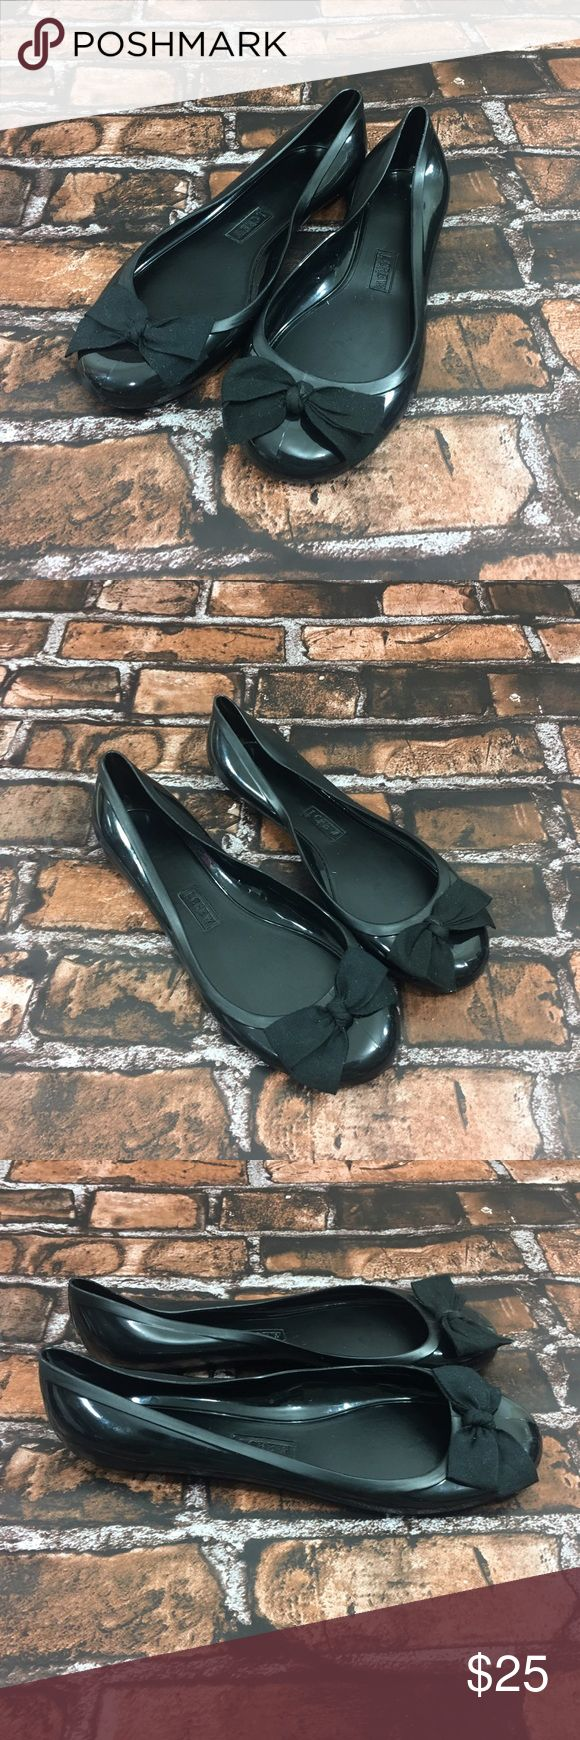 J Crew Woman's Jelly Black Ballet Flats 9 J Crew Woman's Black Jelly Ballet Flats . Size 9. No major flaws or defects. J. Crew Shoes Flats & Loafers